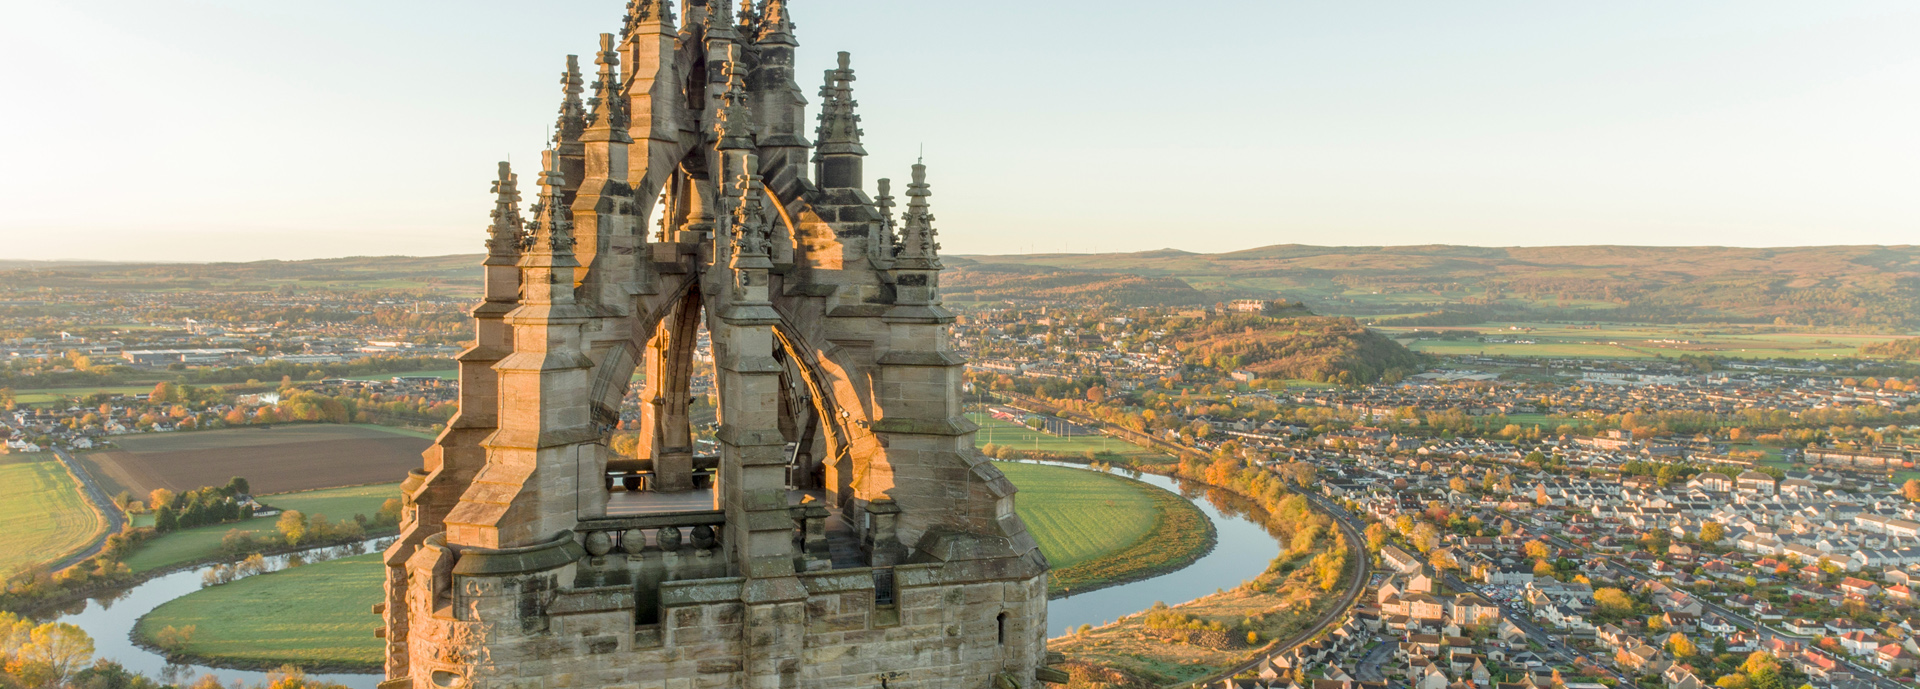 wallace monument and stirling